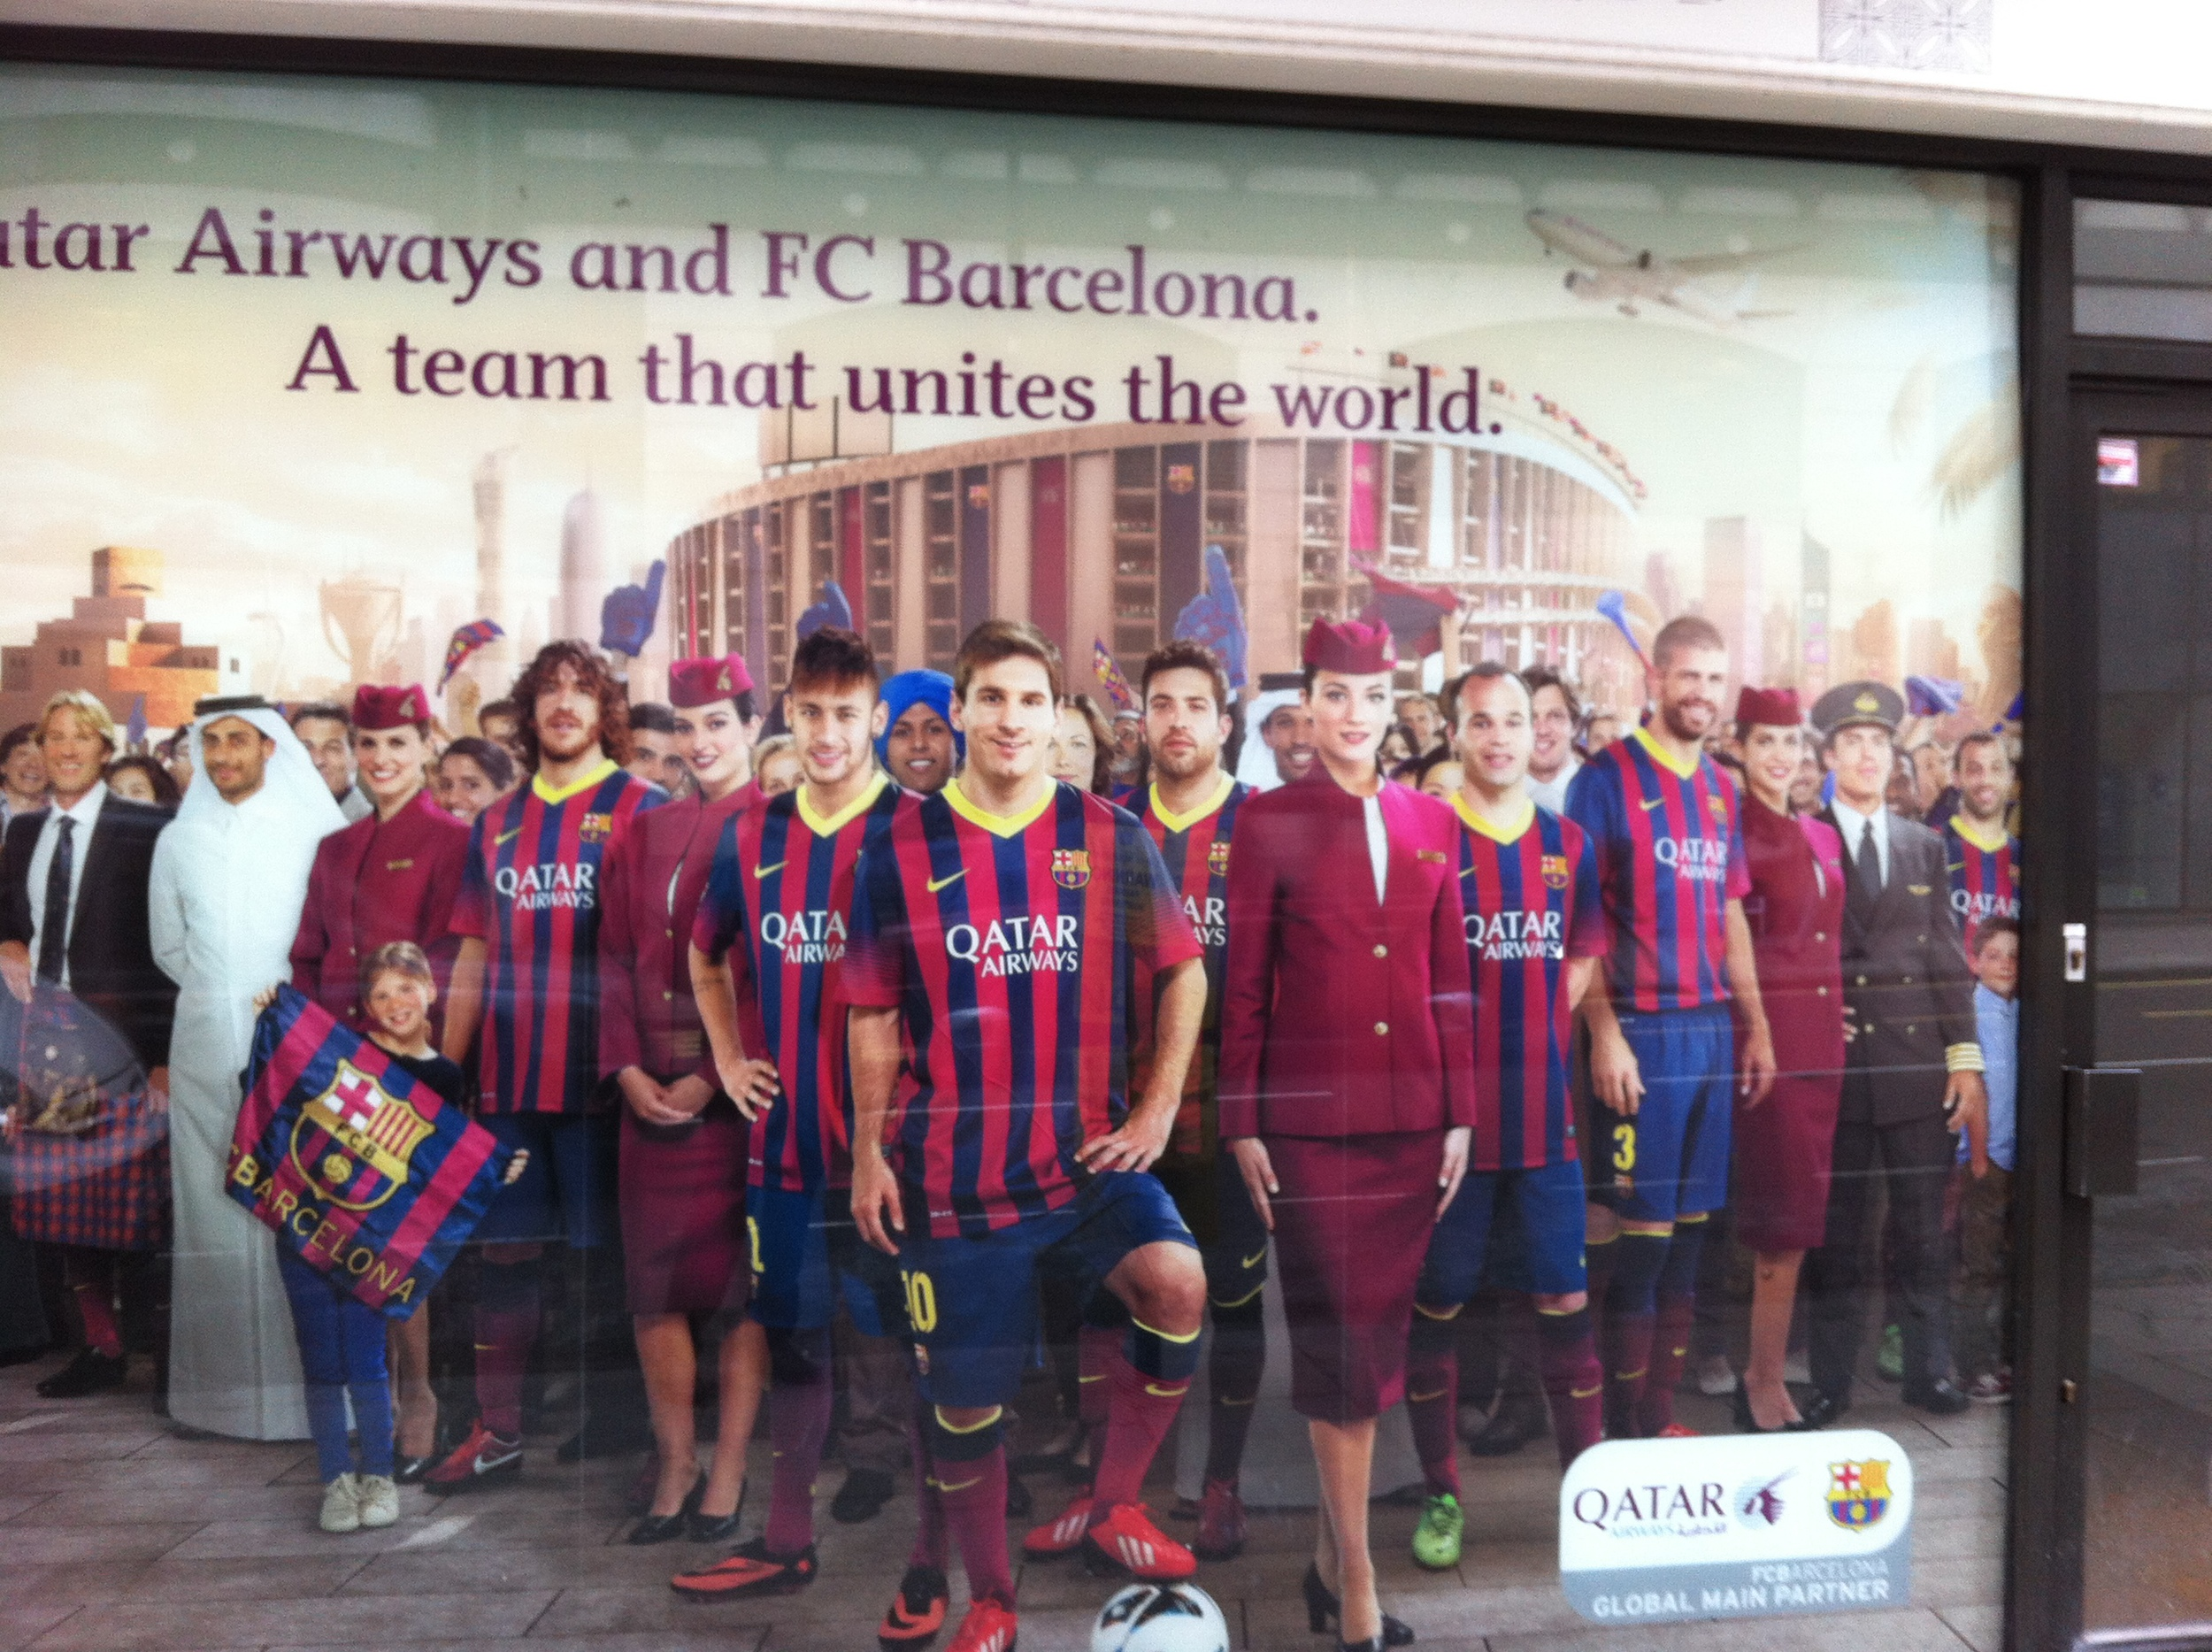 Qatar Airways FC Barcelona poster in London, with Lionel Messi at the forefront